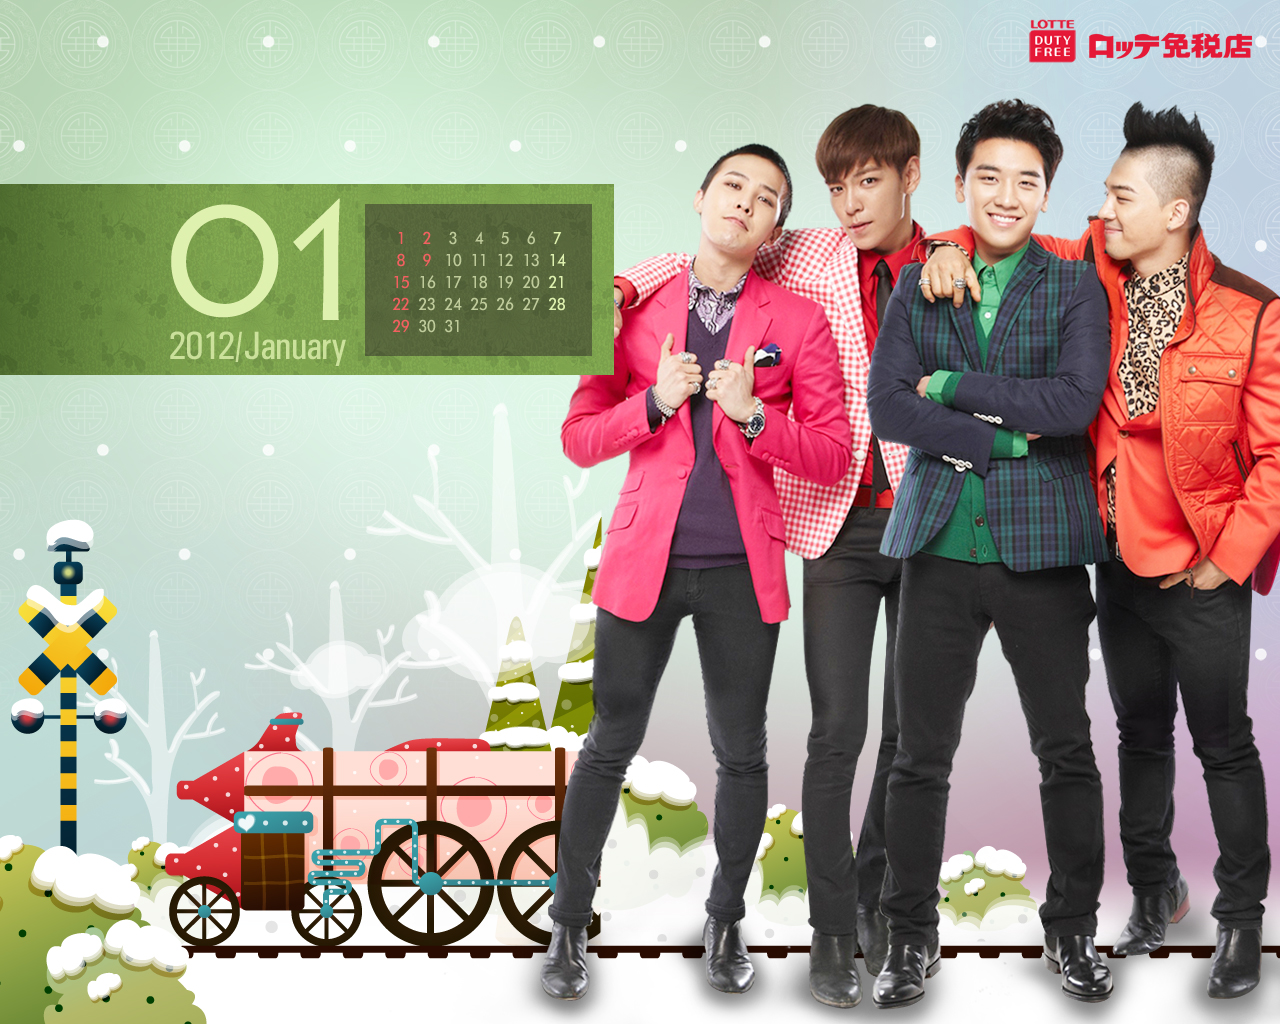 Latest-Kpop-Big-Bang-January-Calendar-HD-Quality-Also-downloa-all-of-BIGBANG-wallpaper-wp5807399